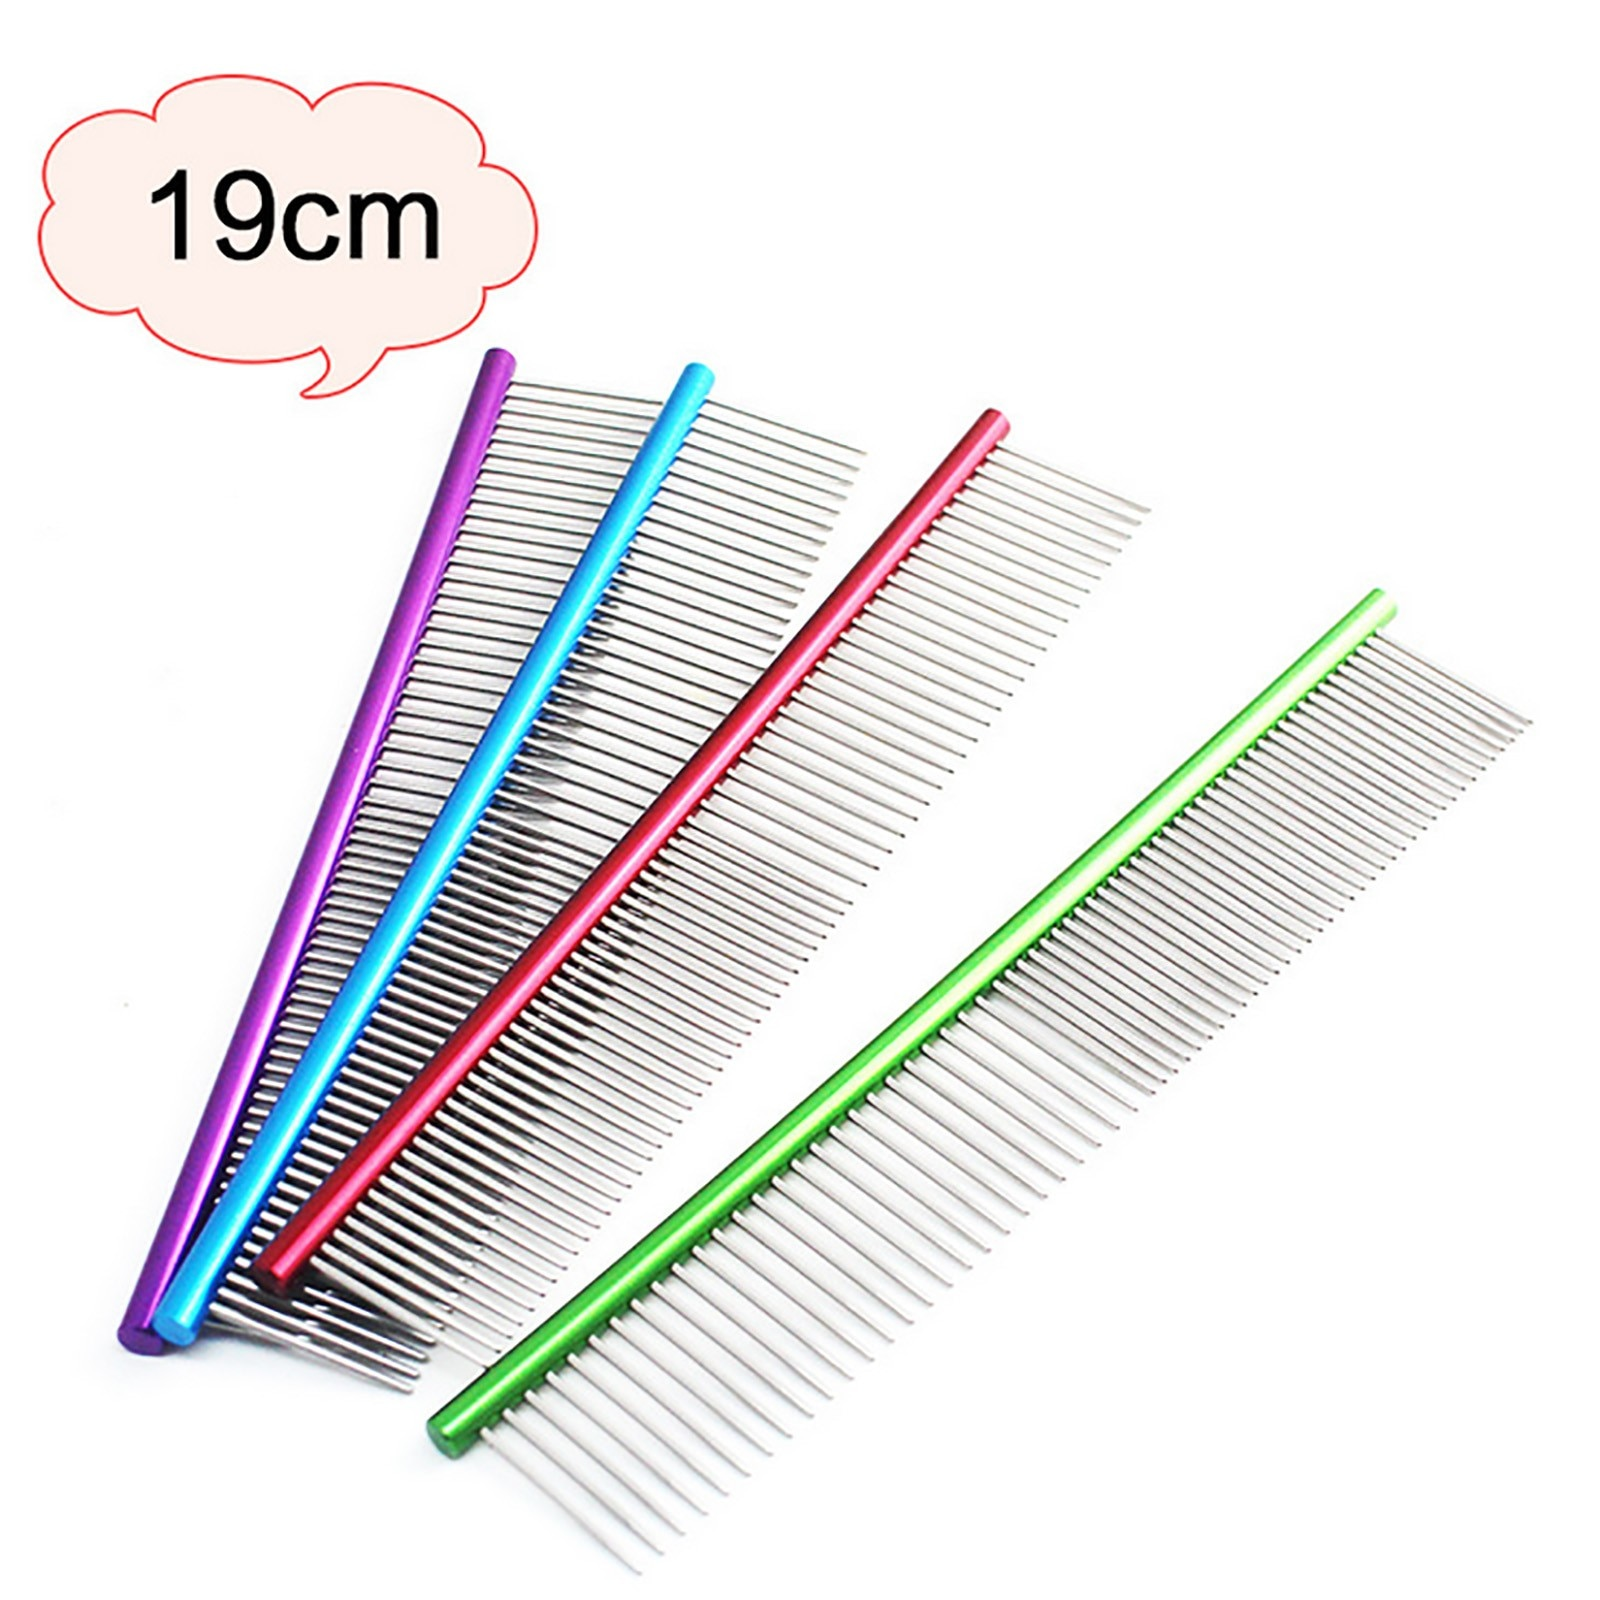 Pet Supplies 19cm High Quality Comb Professional Steel Grooming Cleaning Brush Gloves For Cats Dogs